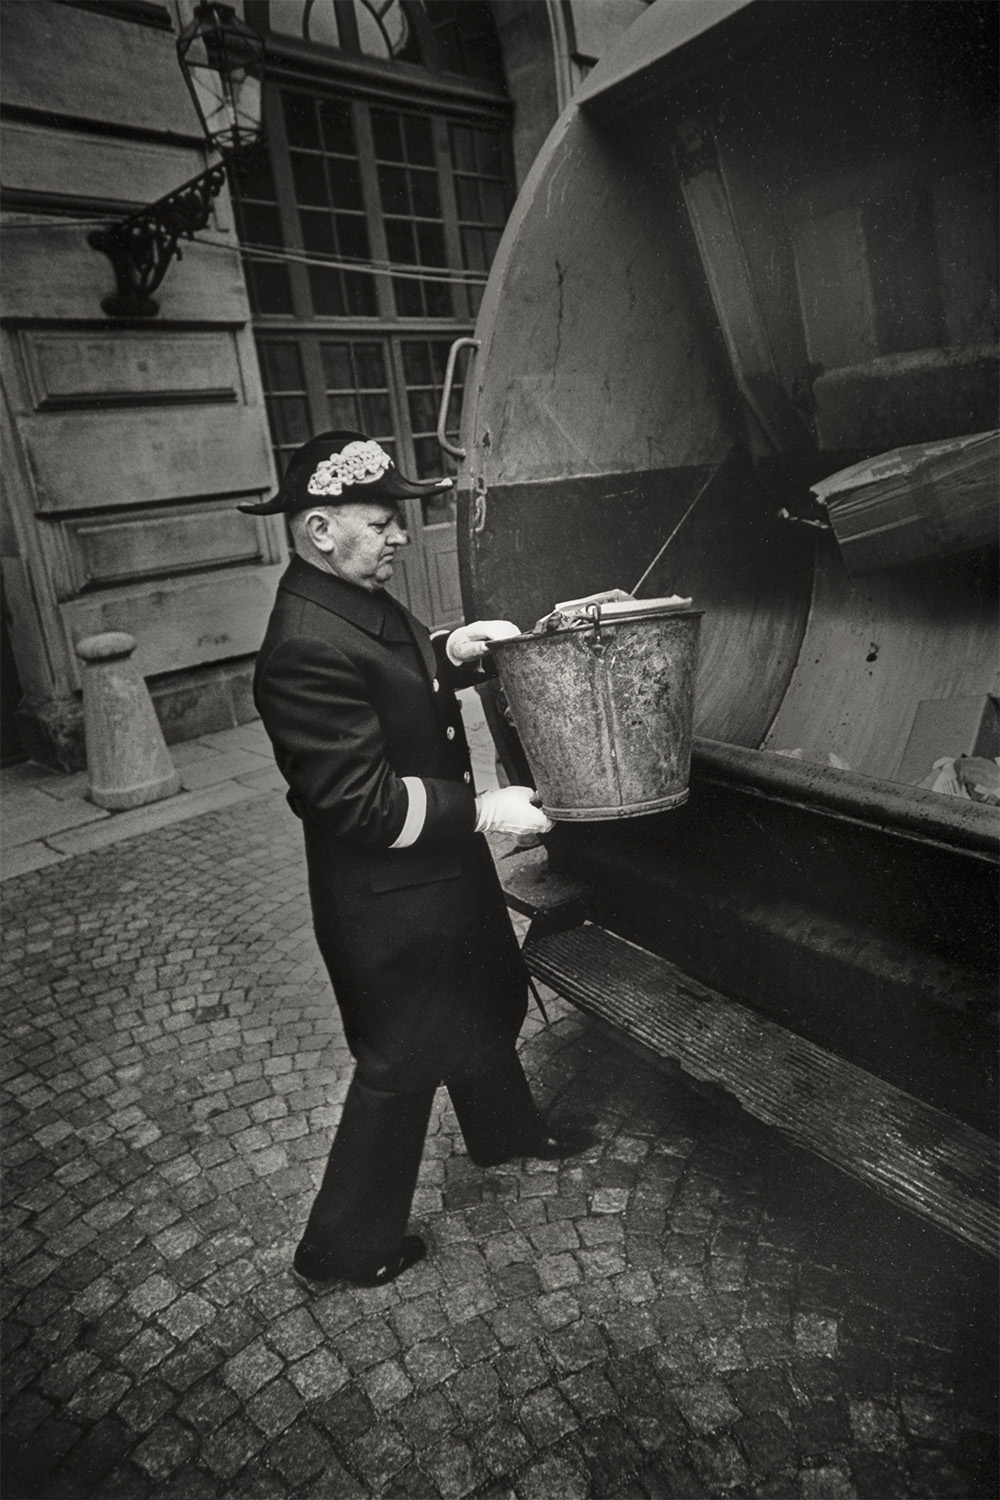 The King's garbage. The Royal Palace of Stockholm 1973